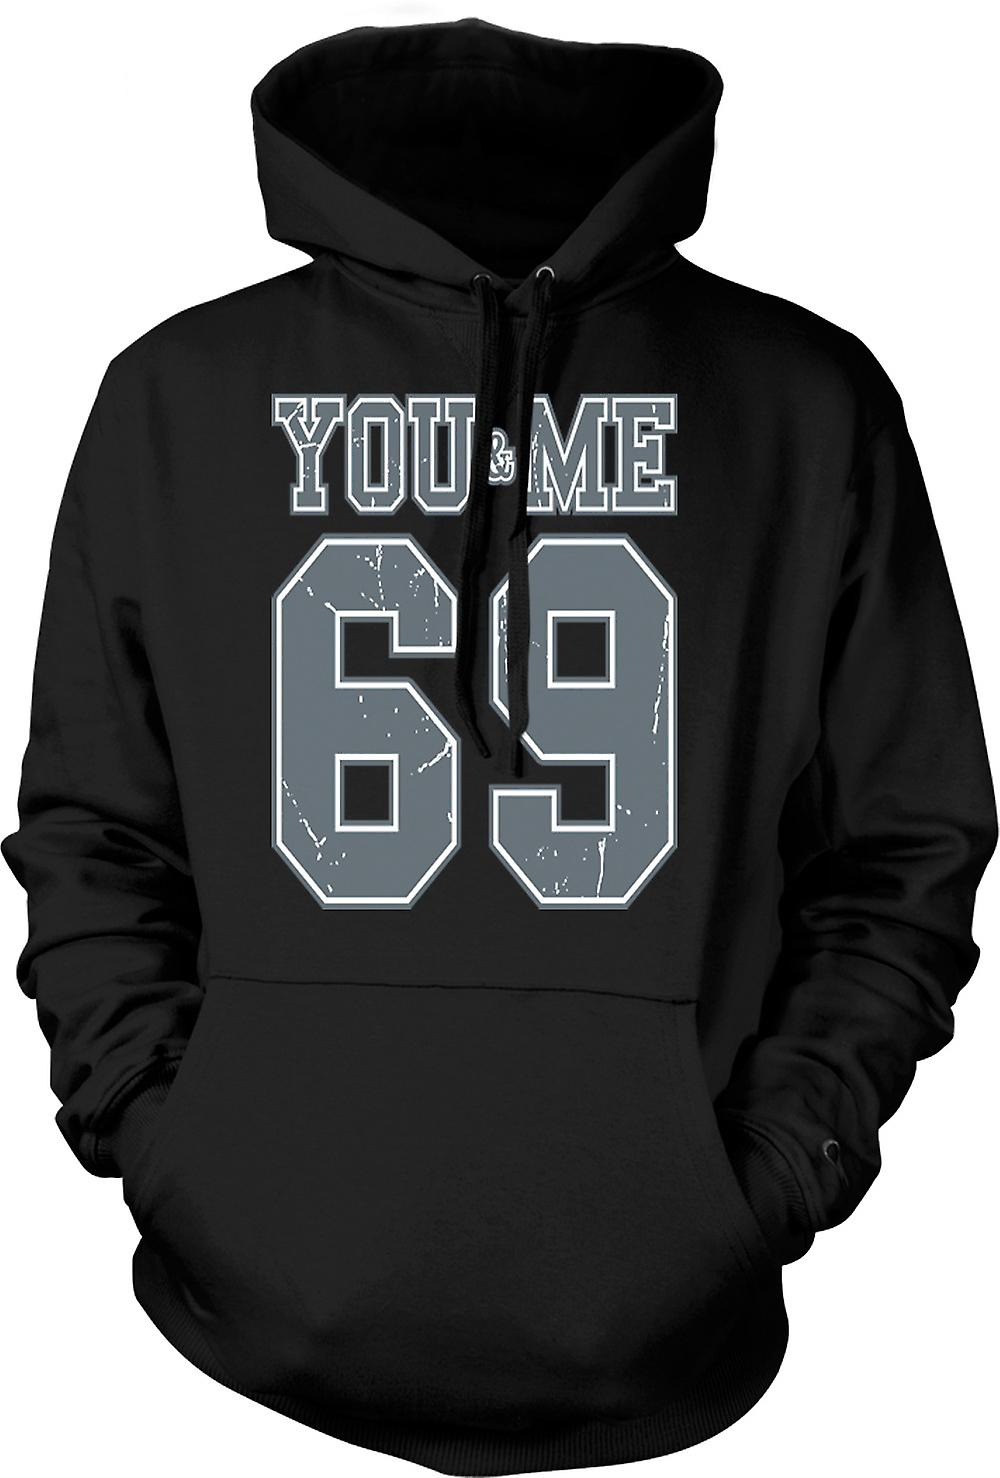 Mens Hoodie - You And Me 69 - College Football - Drôle